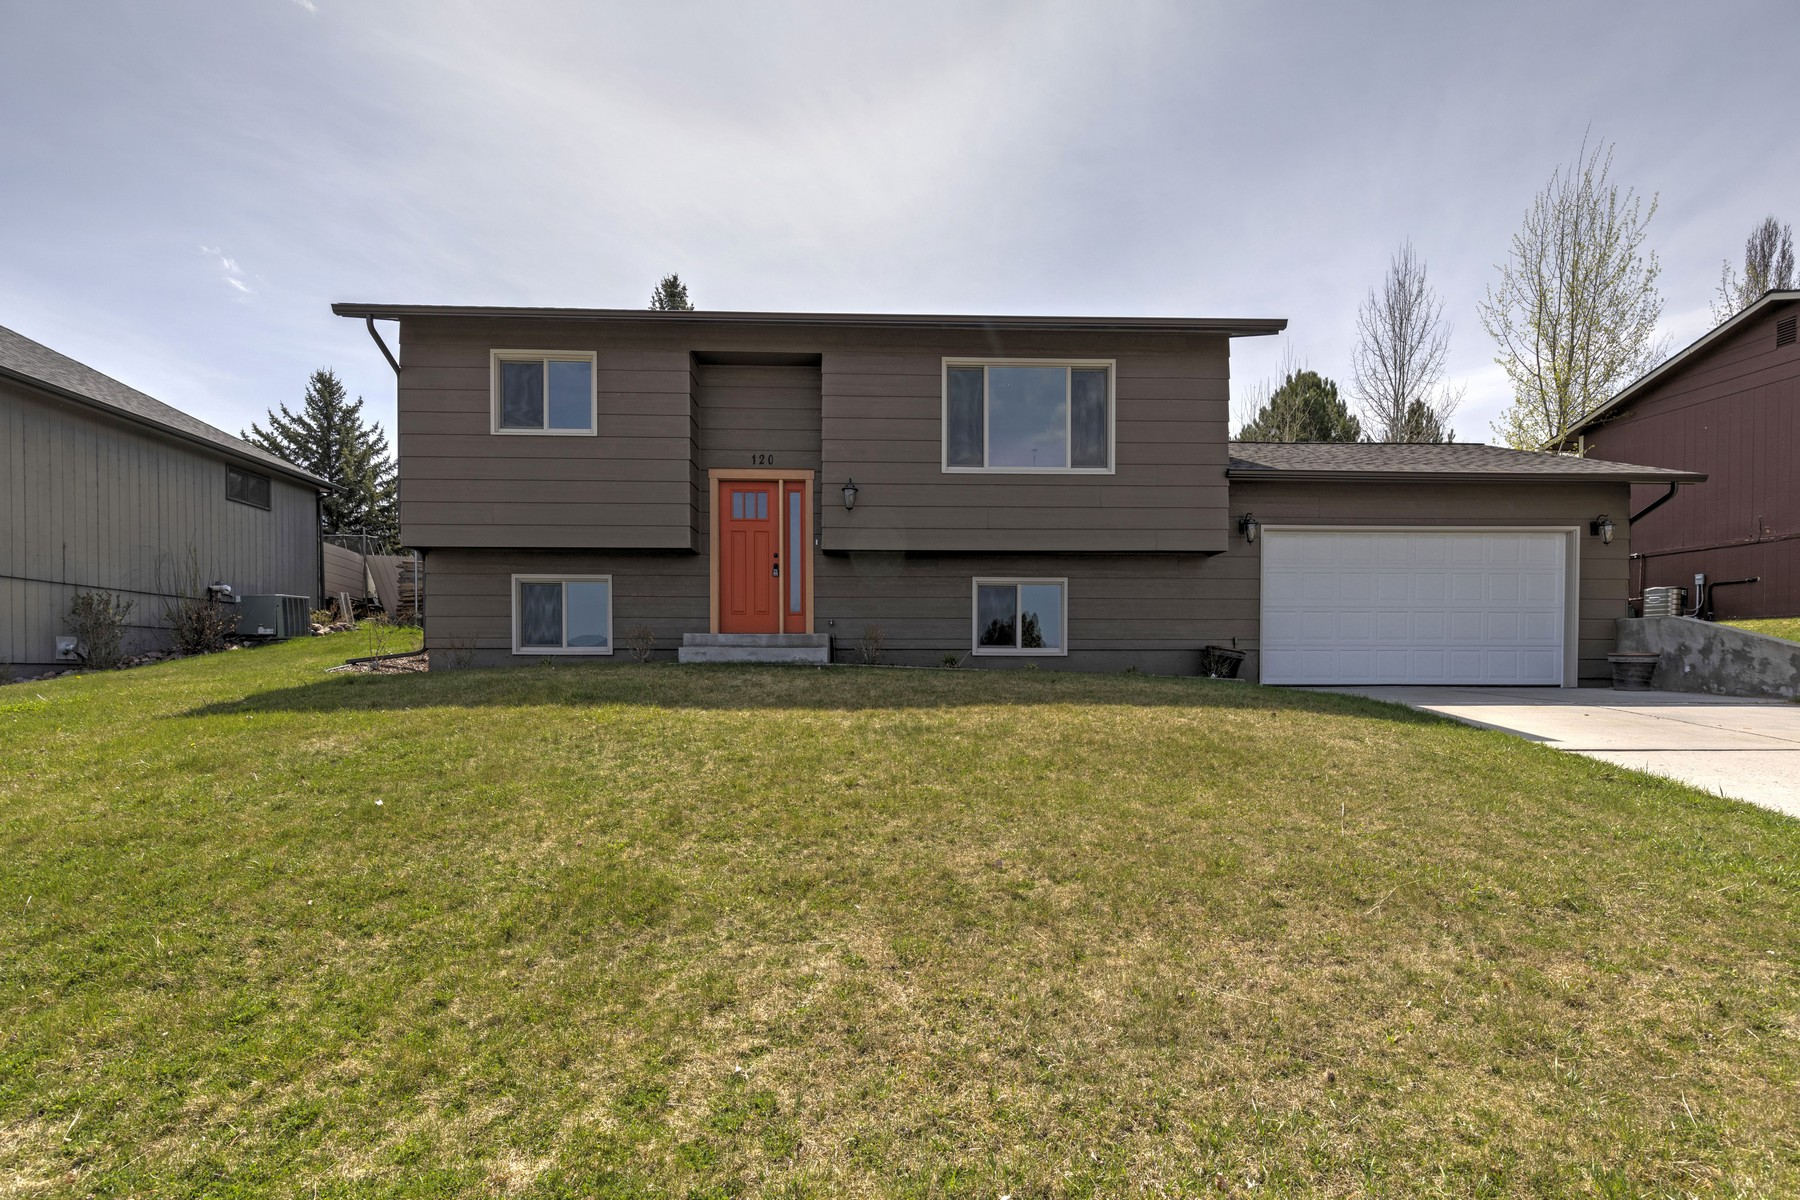 Single Family Homes for Sale at 120 Peery Park Drive Missoula, Montana 59803 United States